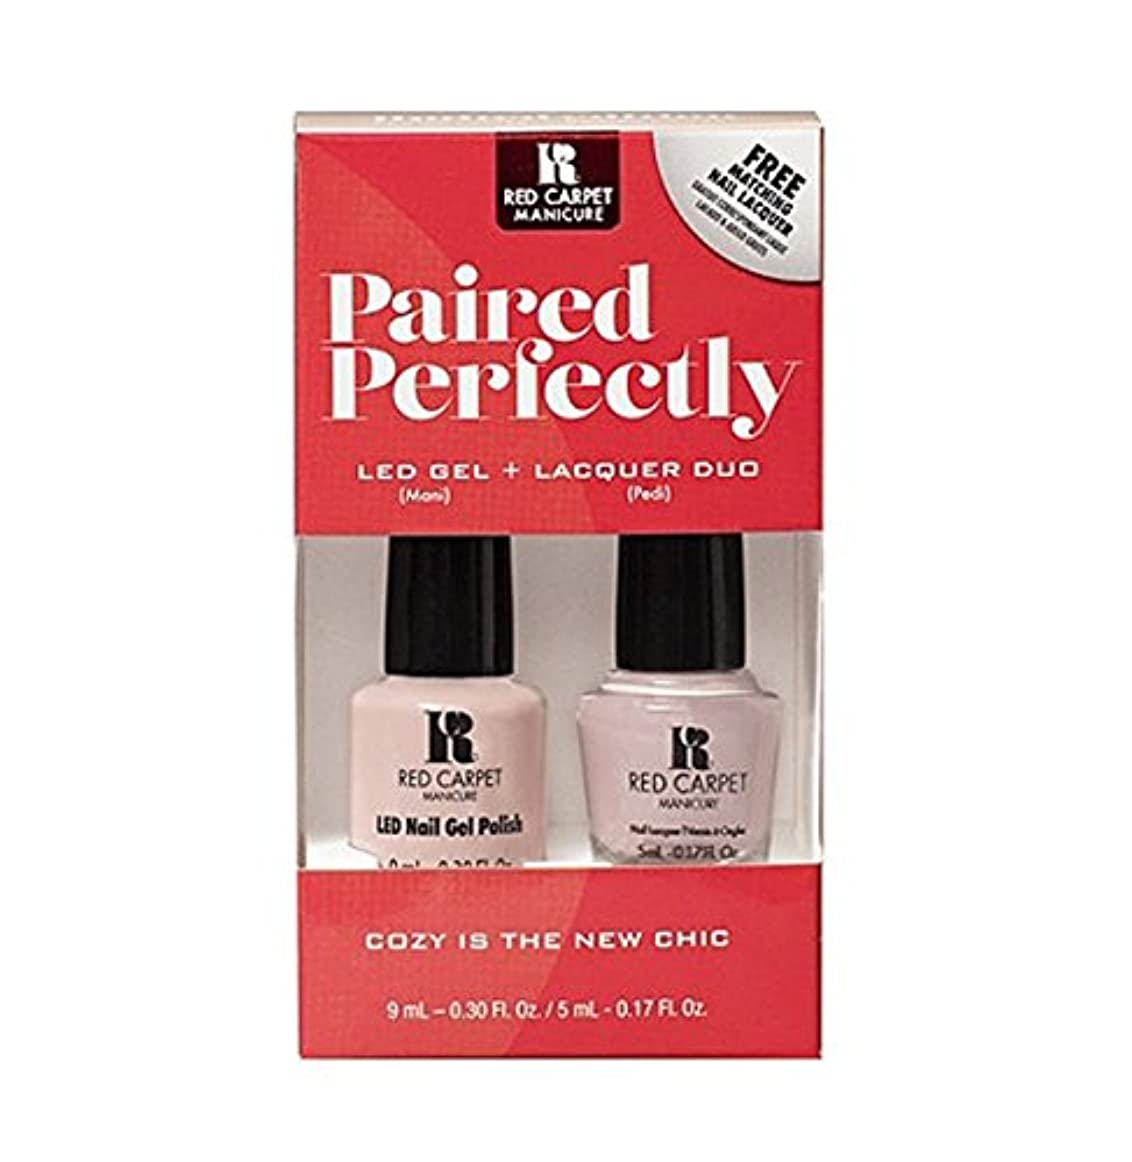 順番恐ろしいキリマンジャロRed Carpet Manicure - Paired Perfectly GEL & Lacquer DUO - Cozy Is the New Chic